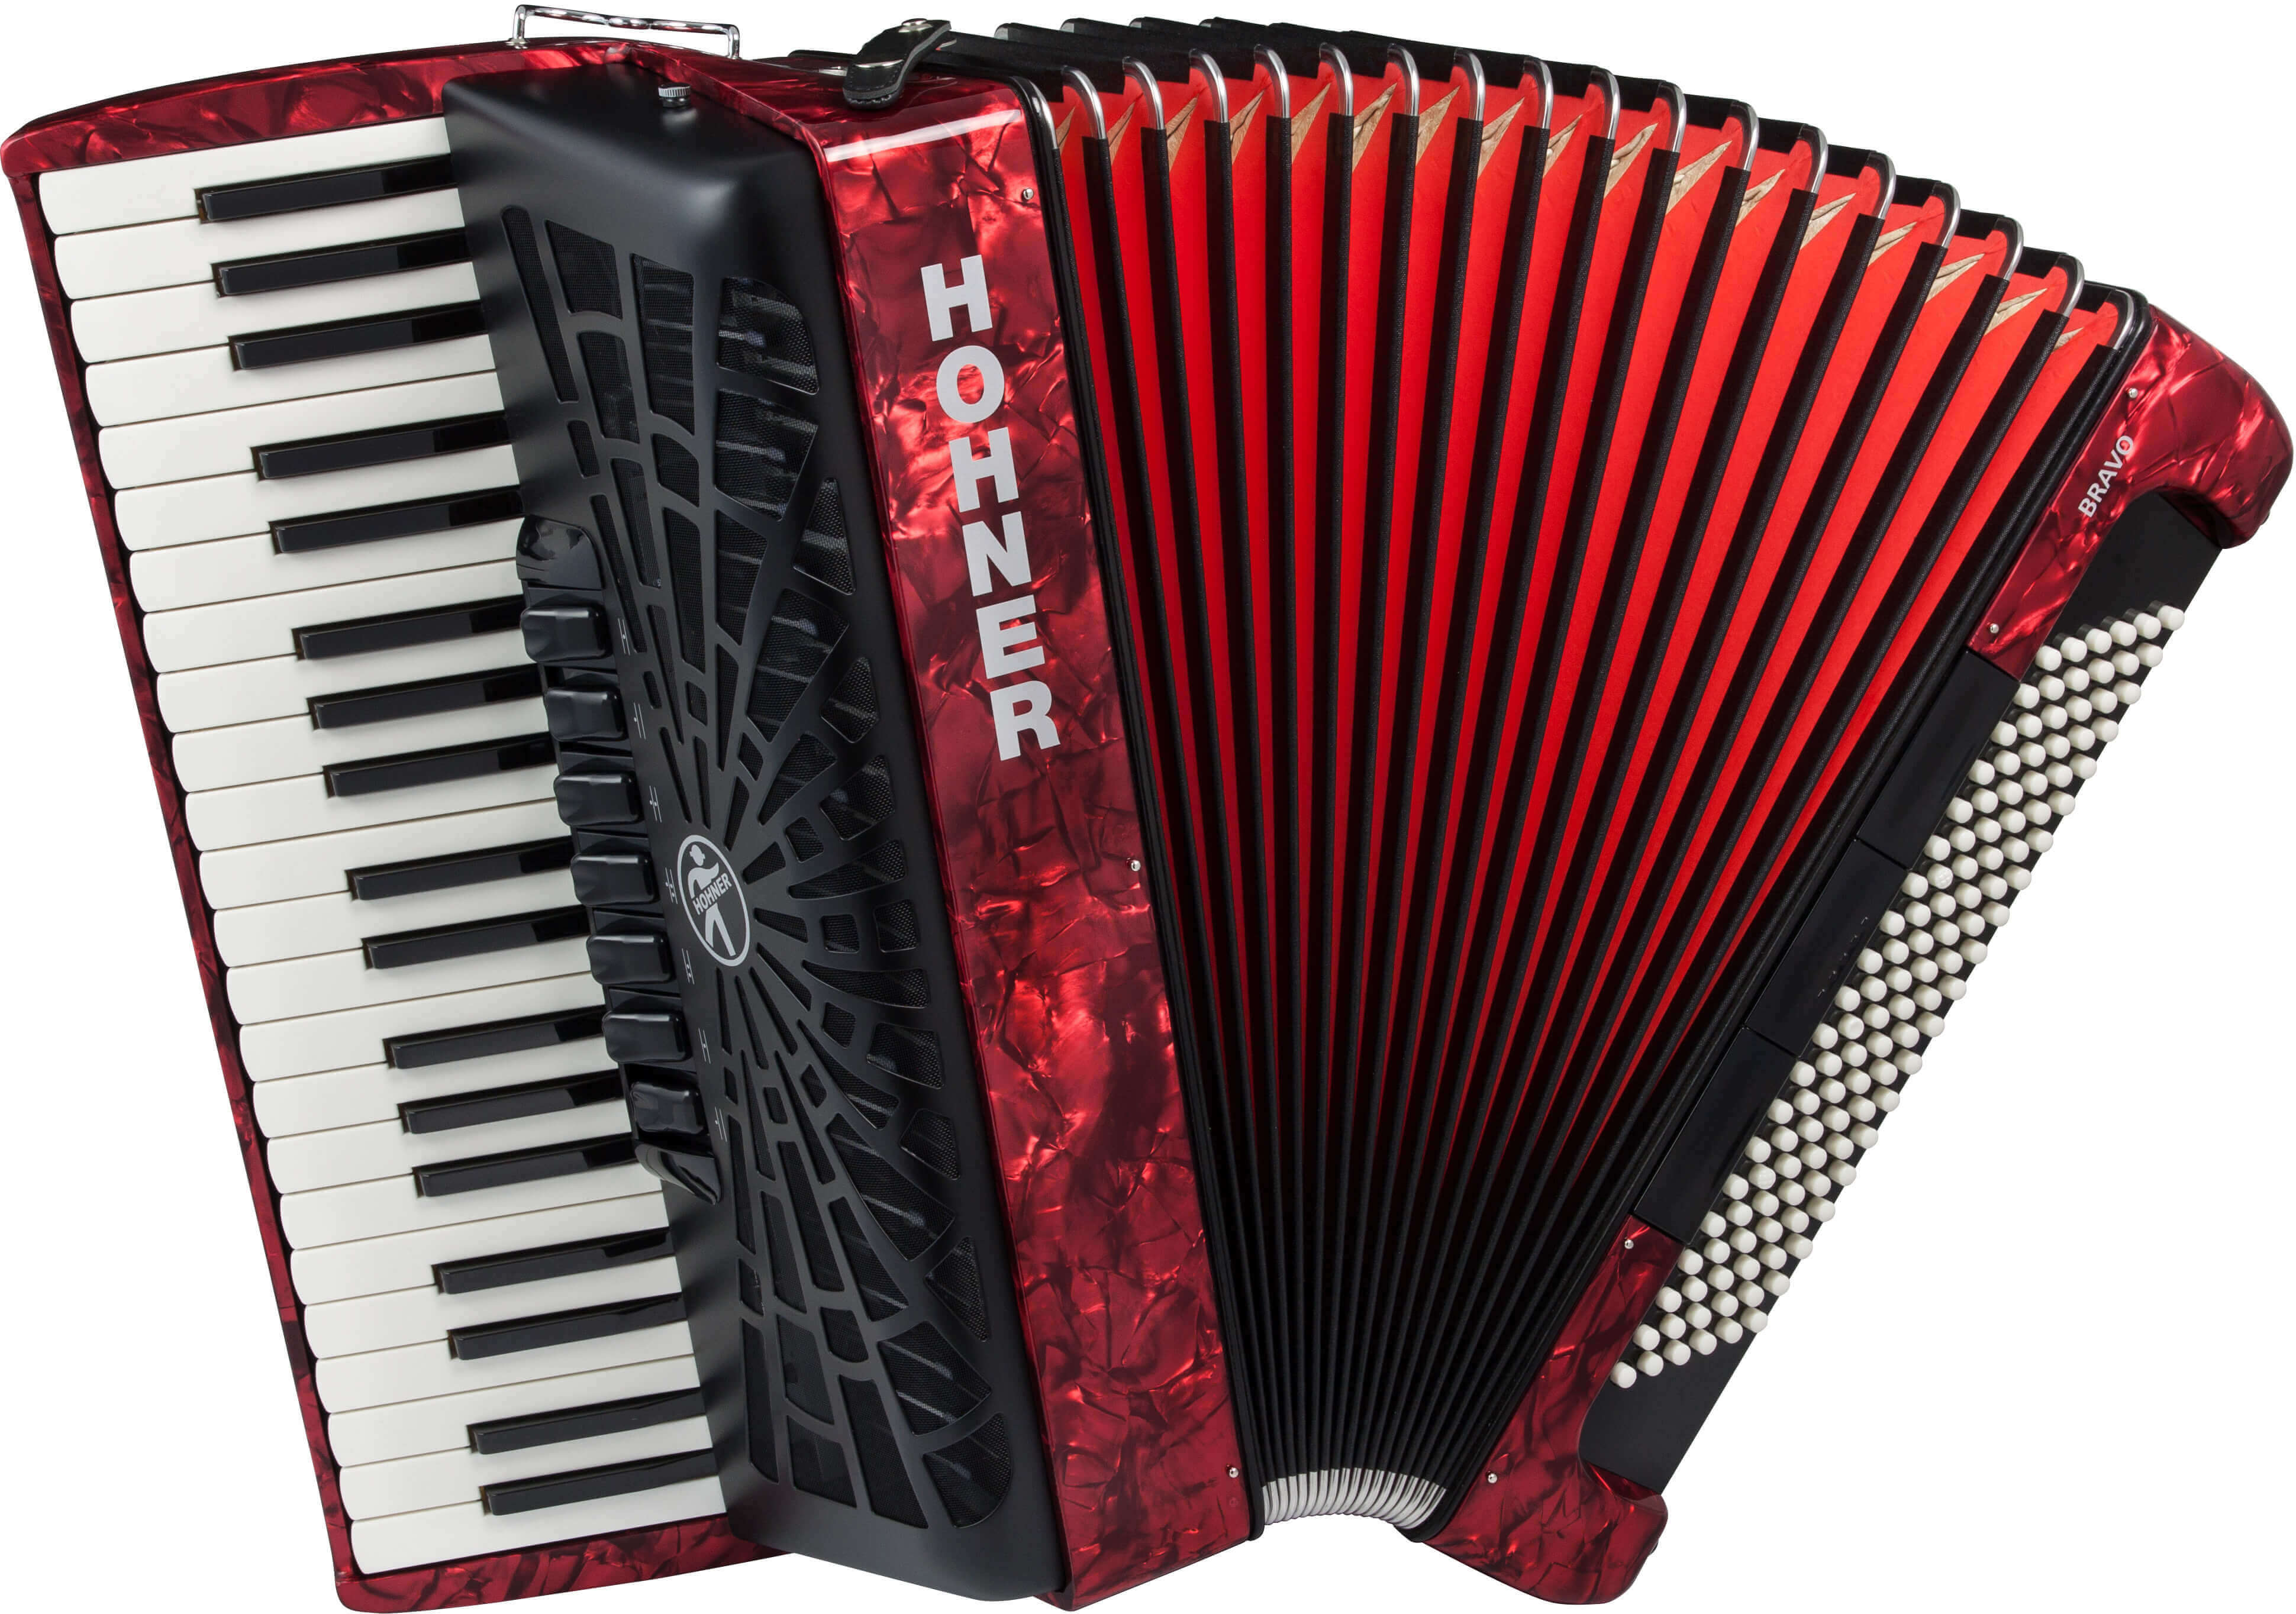 Hohner Bravo III 120 piano accordion